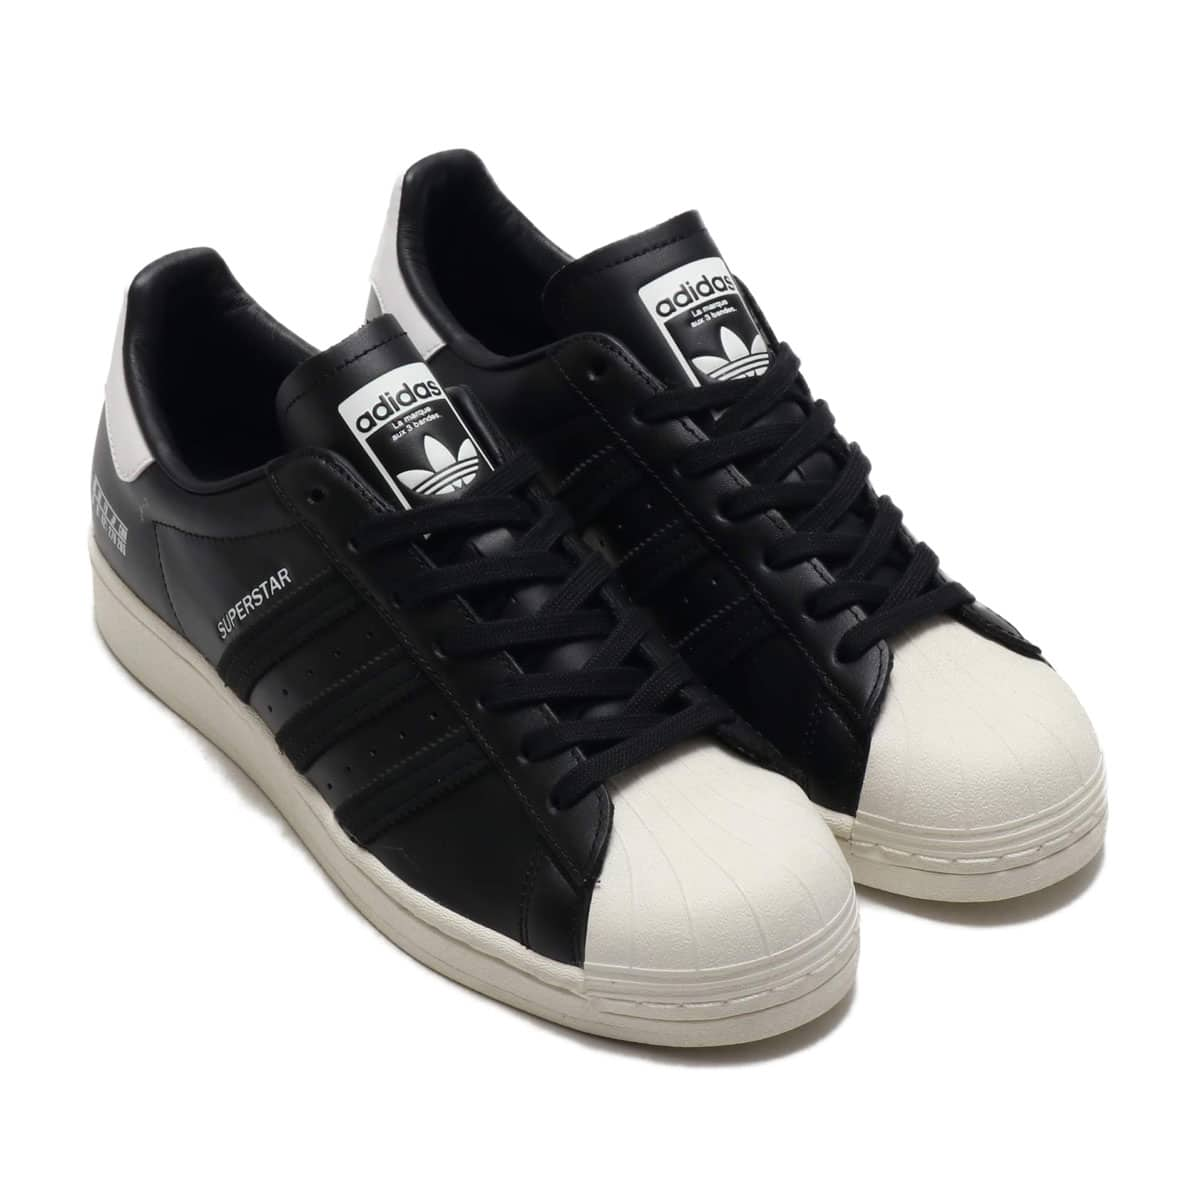 adidas SUPERSTAR CORE BLACK/CORE BLACK/OFF WHITE 20SS-I_photo_large